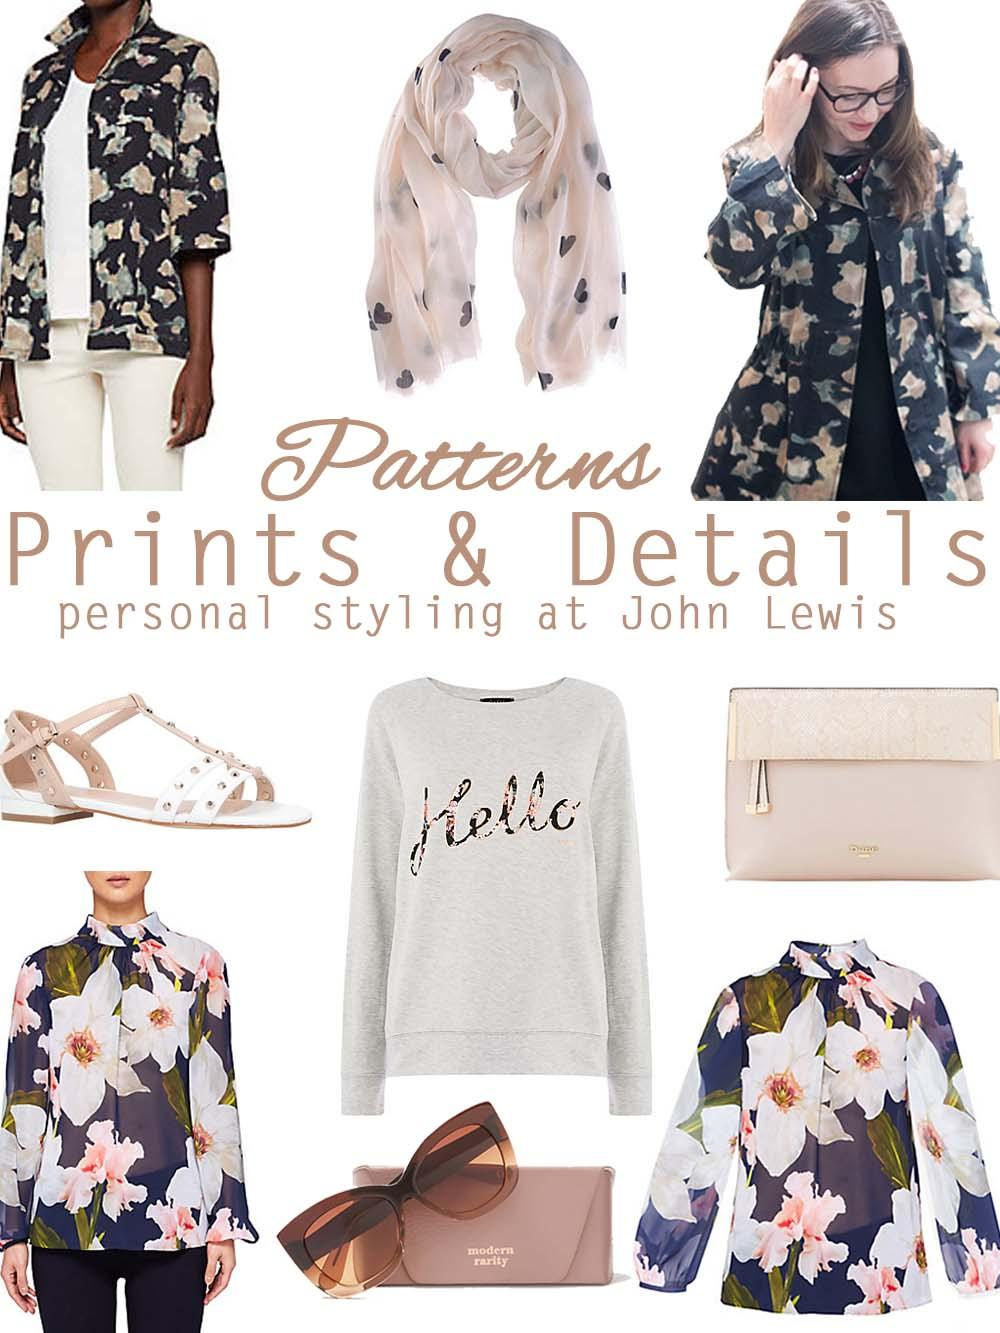 Spring Outfit Inspo From An Evening With John Lewis Personal Stylists